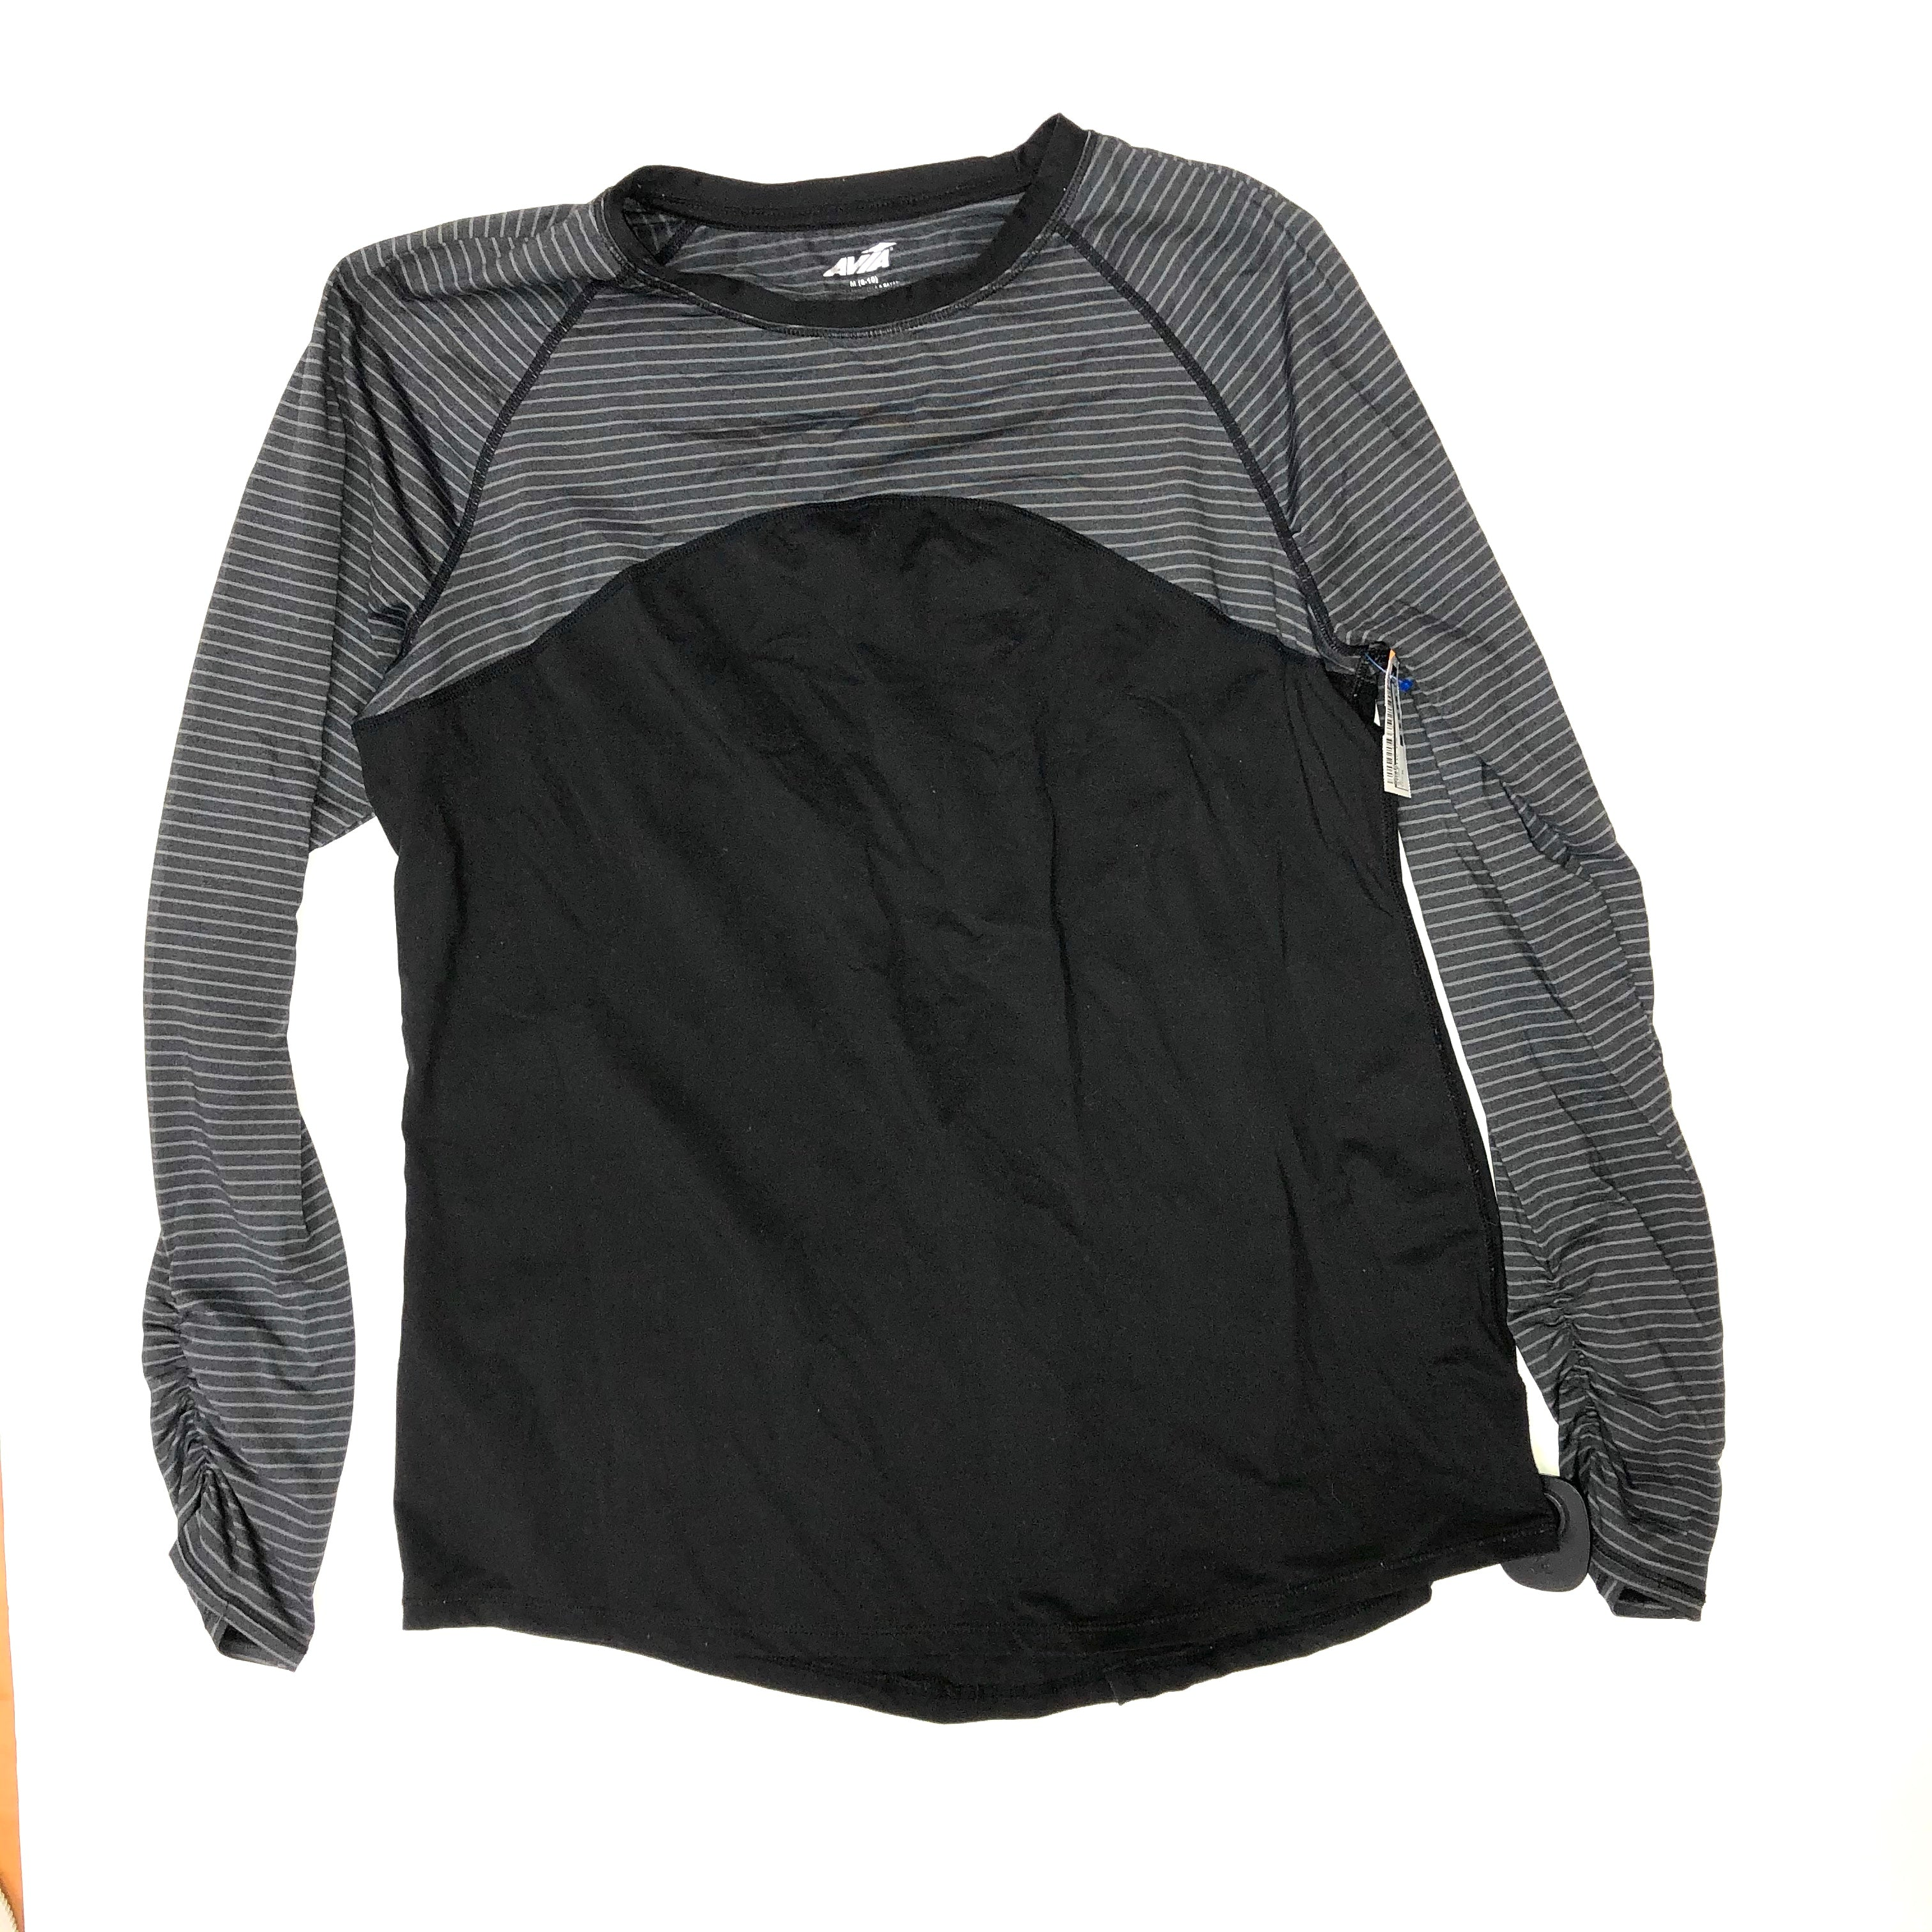 Primary Photo - brand: avia , style: athletic top , color: black , size: m , sku: 267-26774-28543